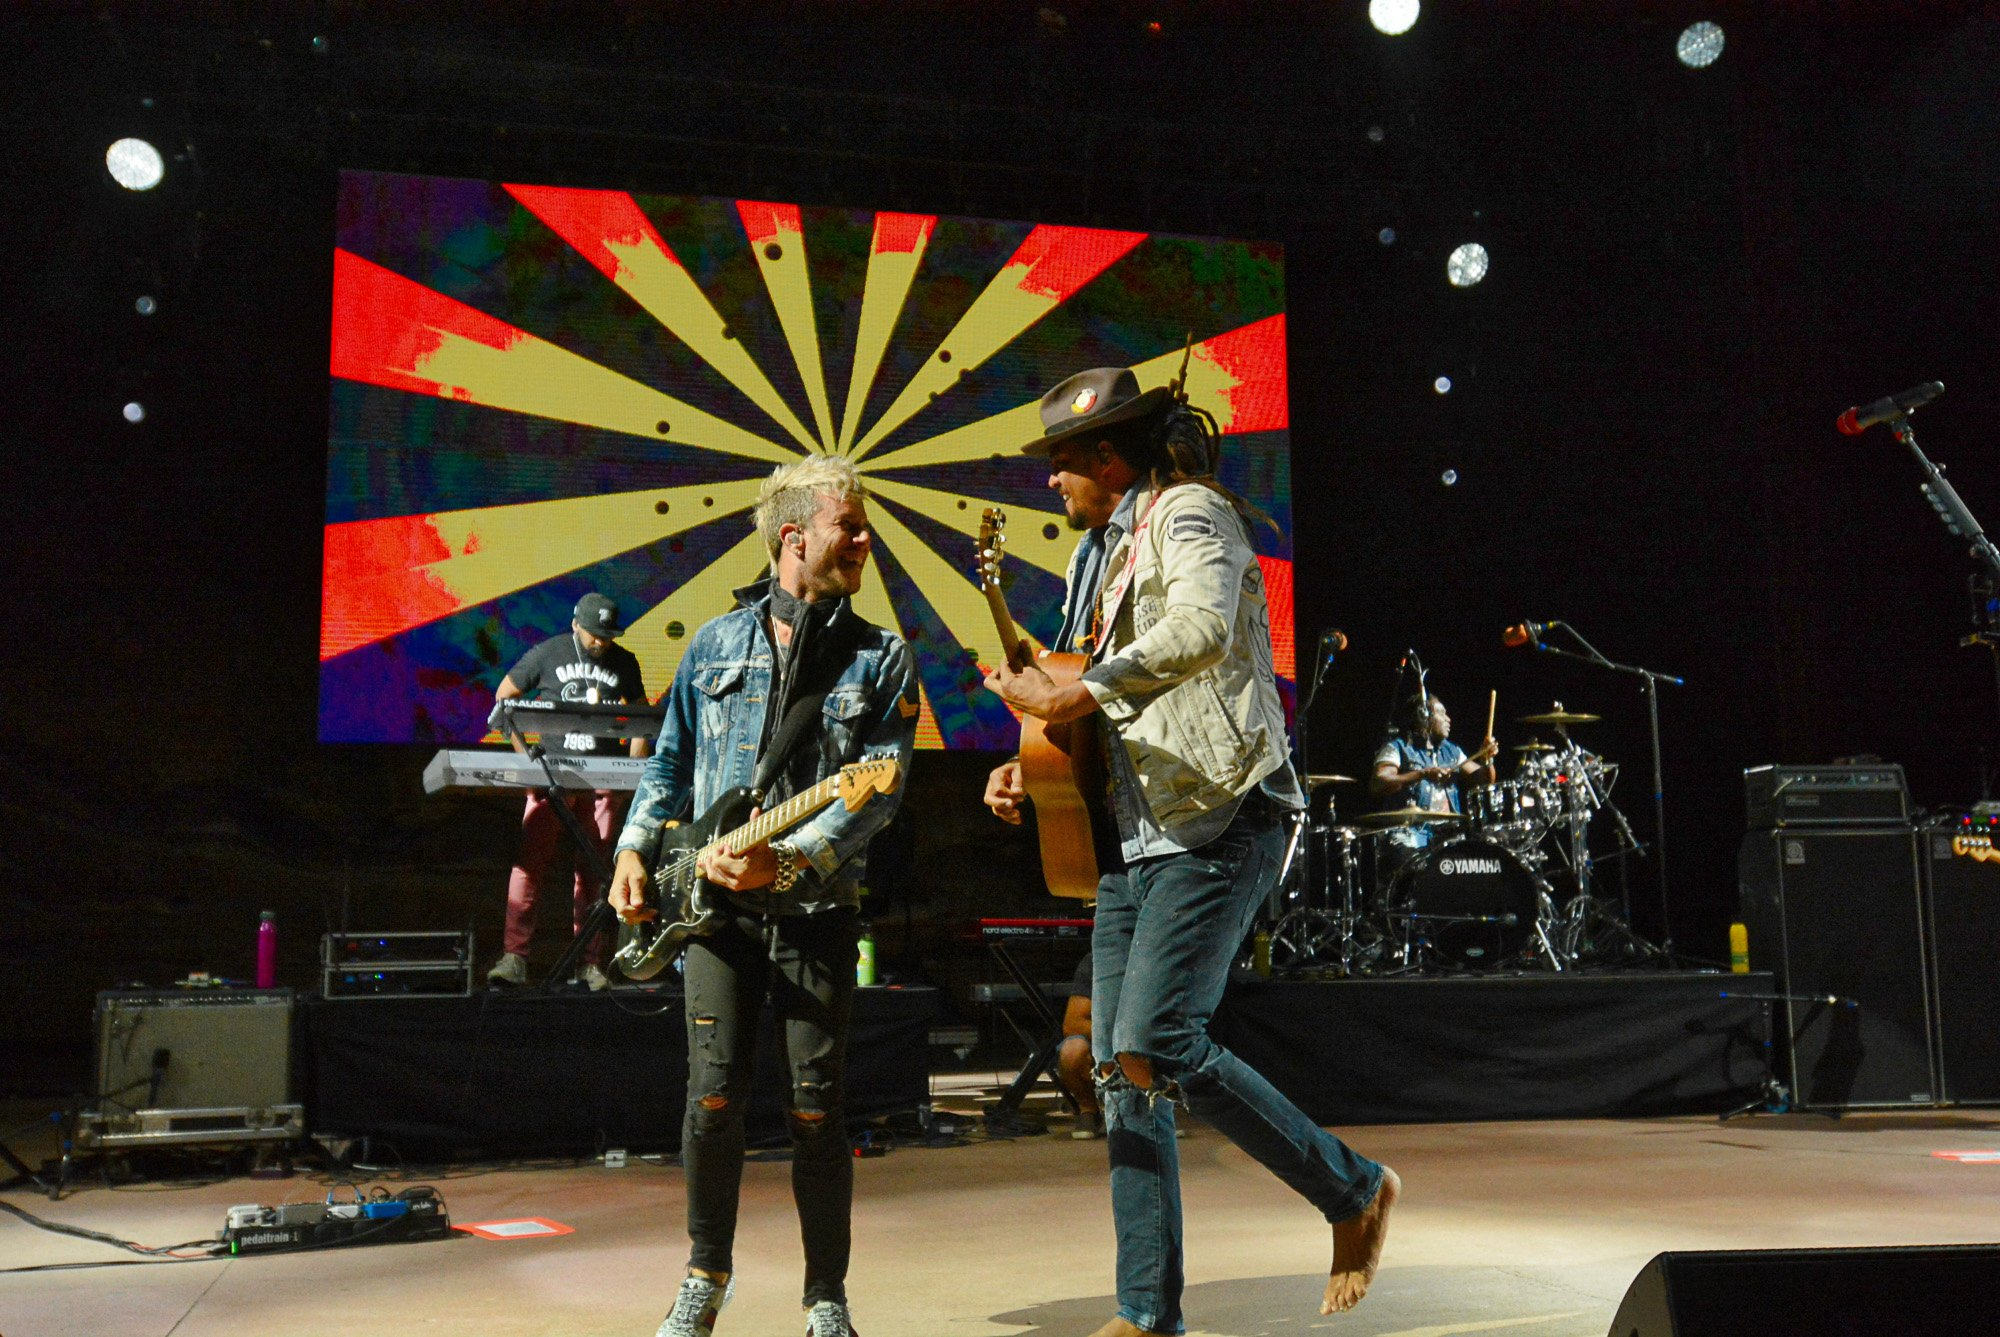 Concert review: Michael Franti's love inspires fans at sold-out Red Rocks show